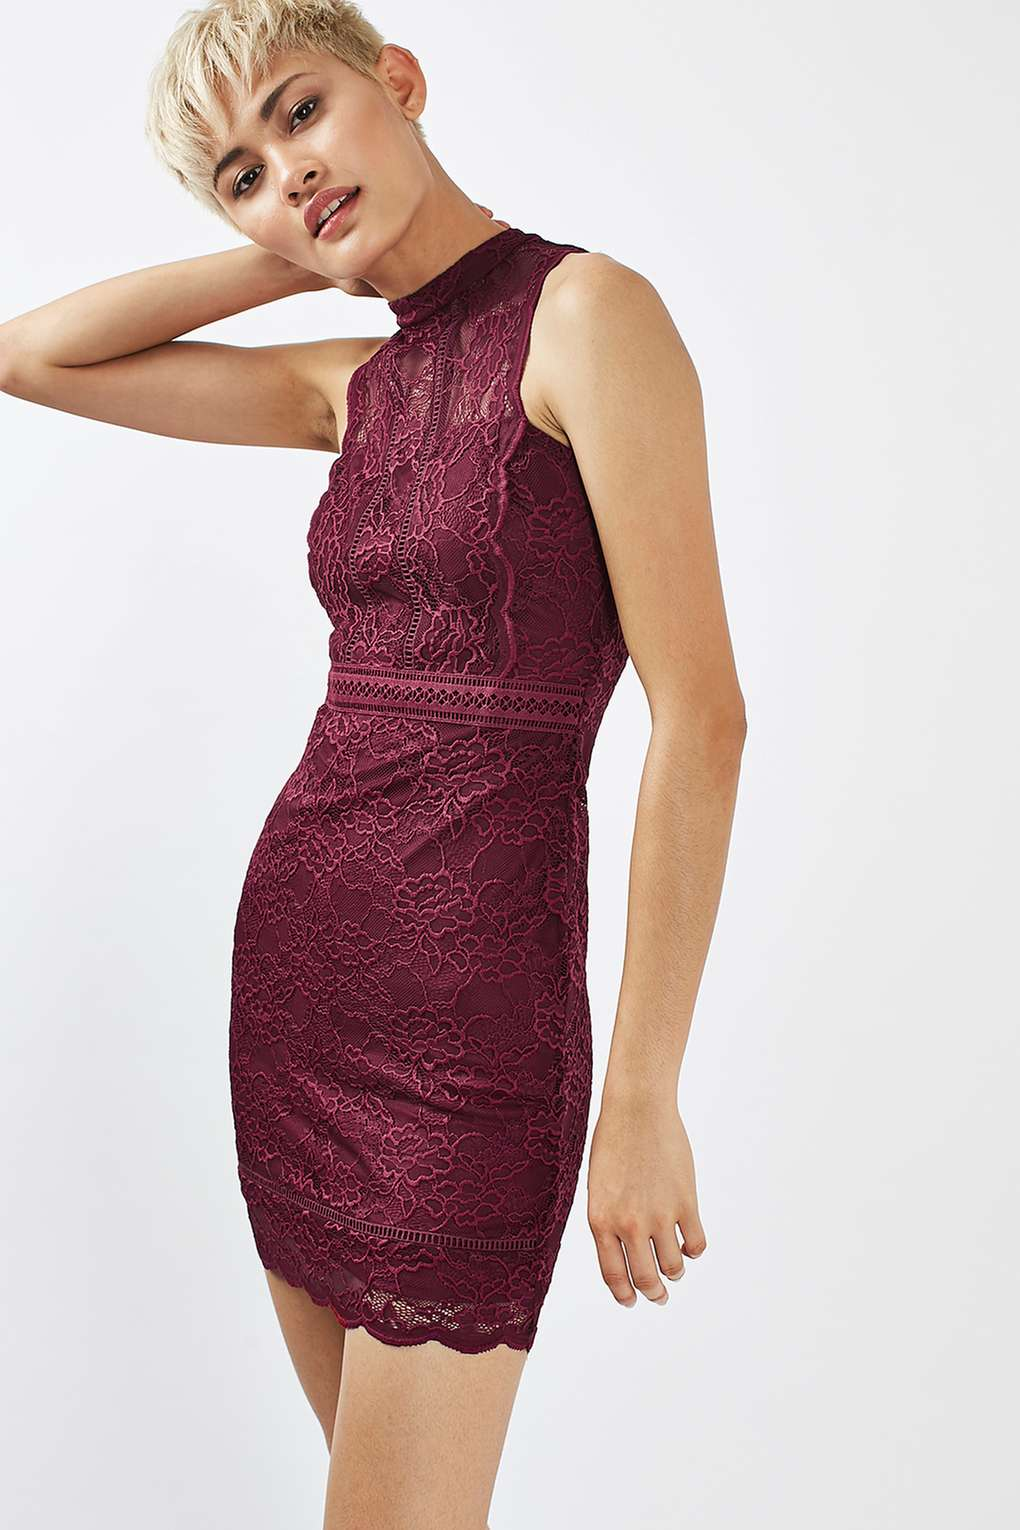 Topshop Scallop Mix Lace Bodycon Dress - 10 Seductive Burgundy Pieces for Fall